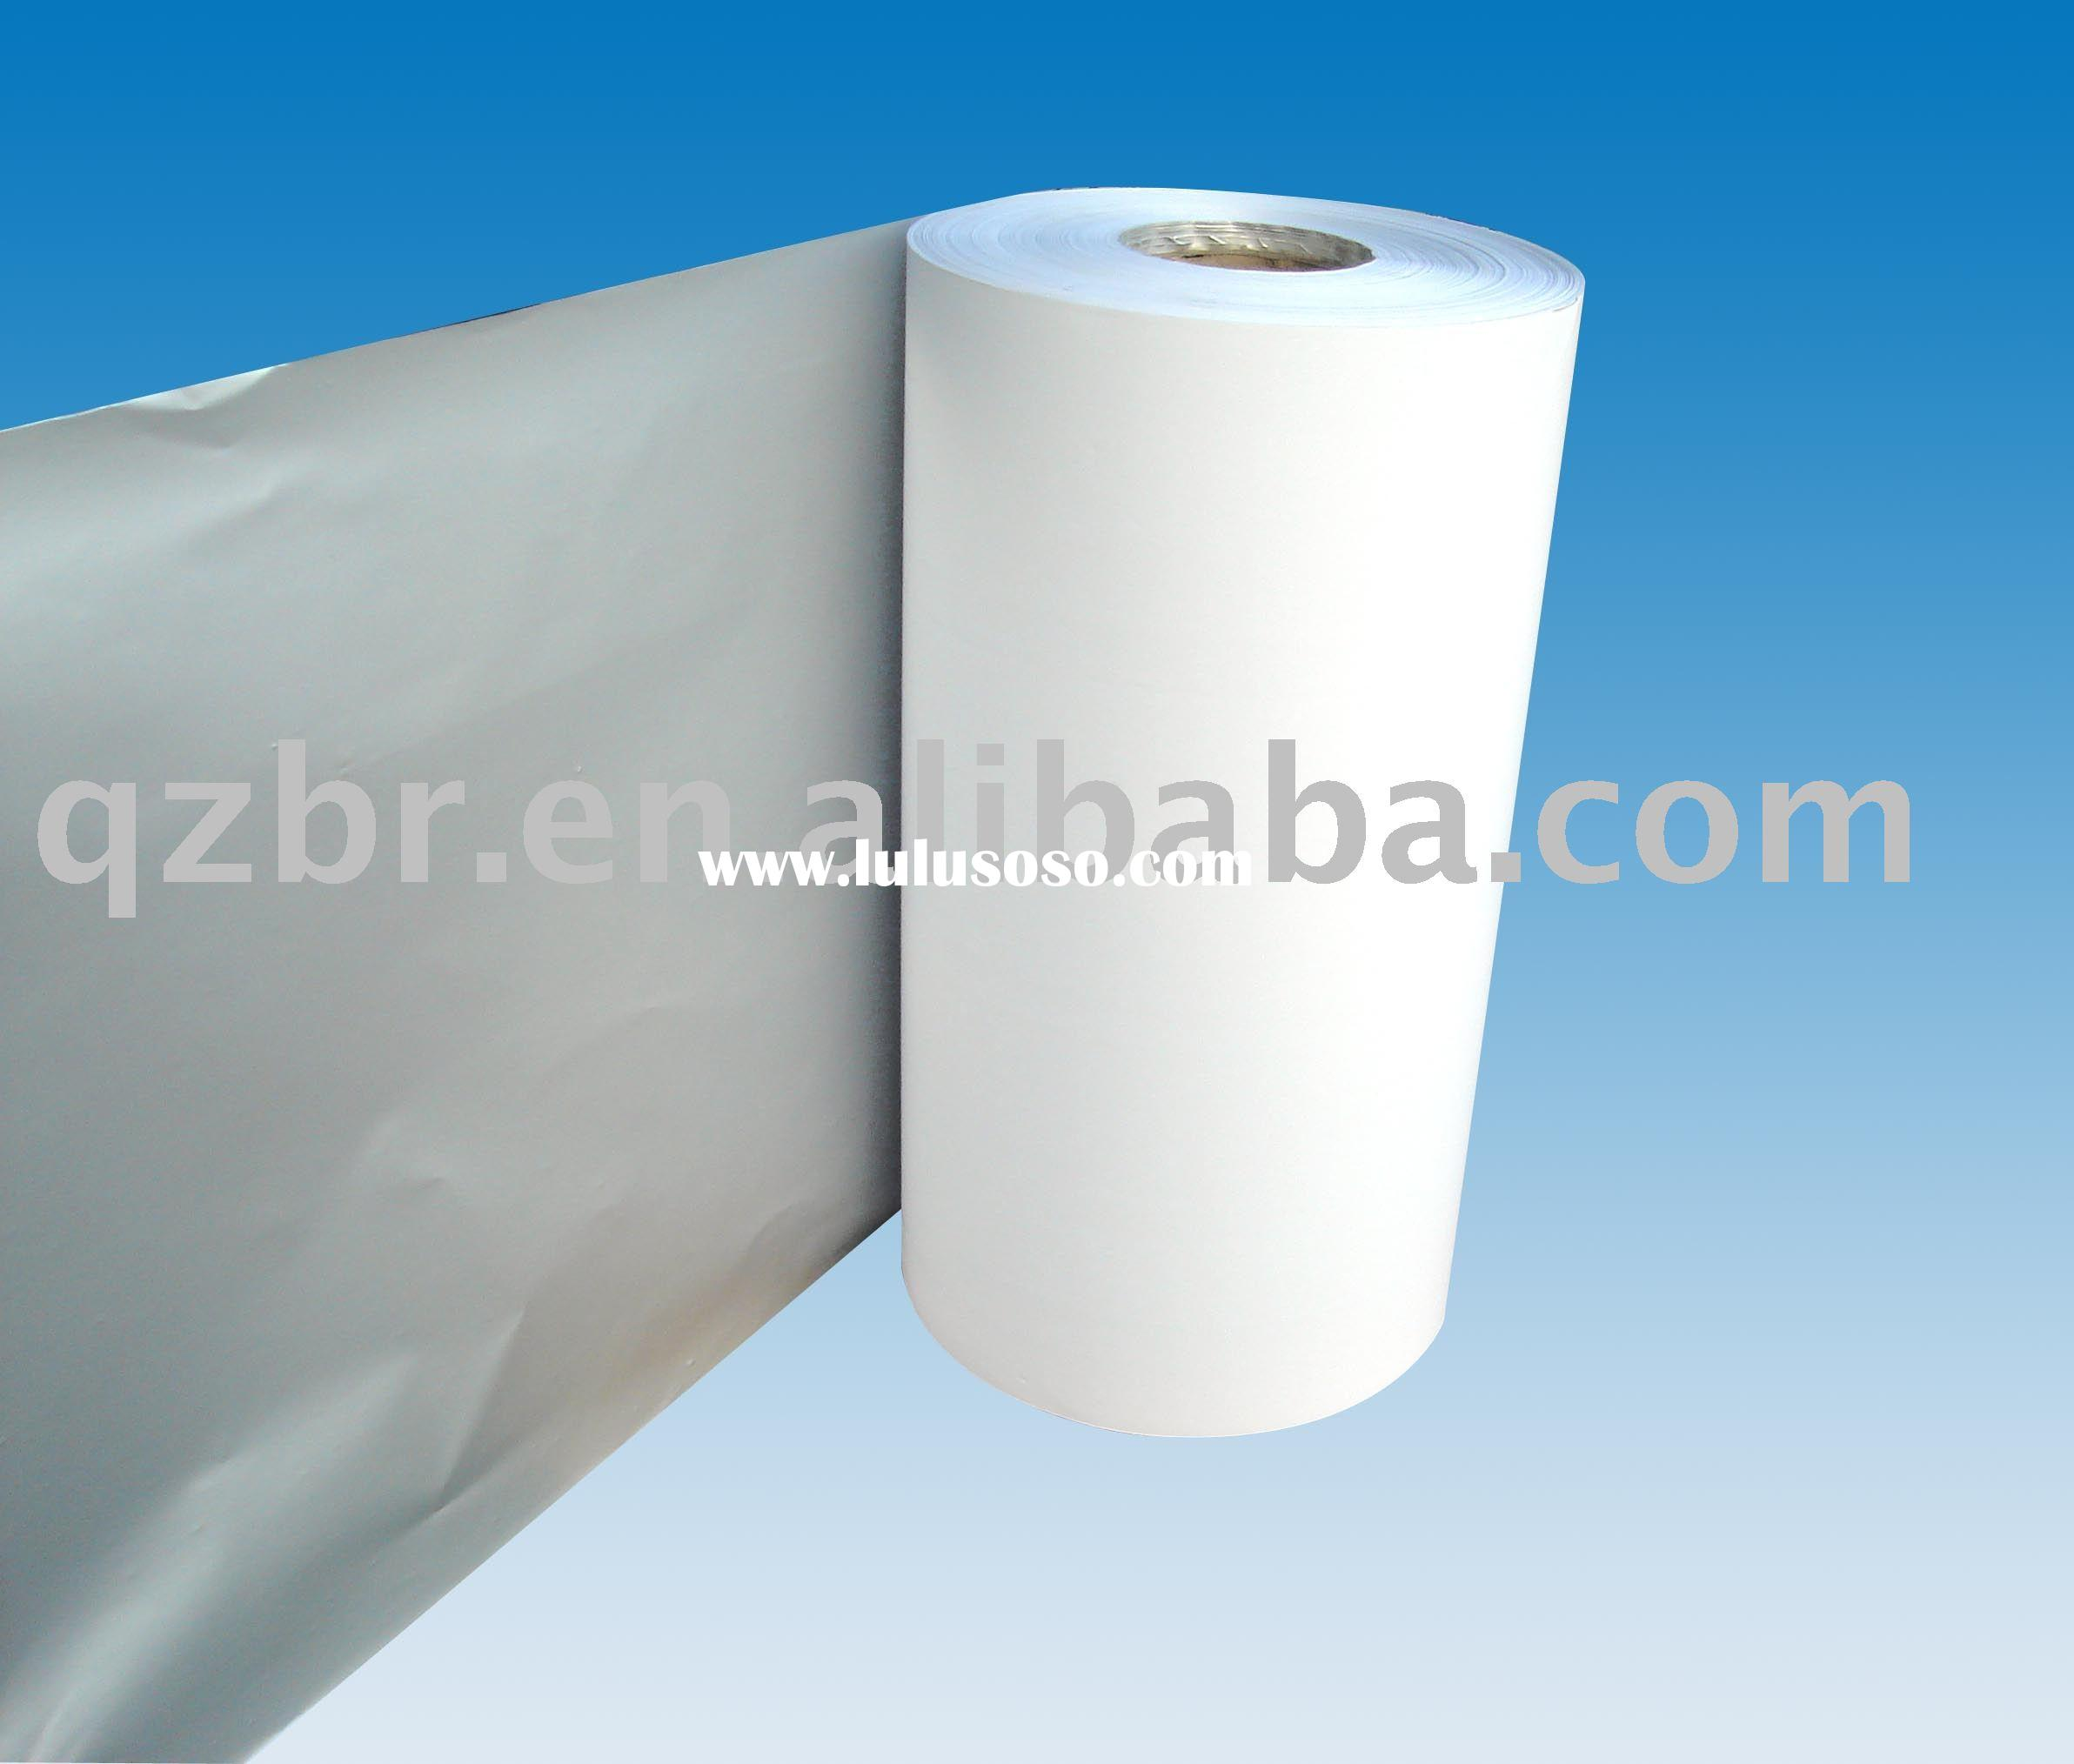 PRINTED & COATED ALUMINIUM FOIL PAPER FOR ALCOHOL PREP PAD AND CLEANING TISSUE\ALCOHOL Swab